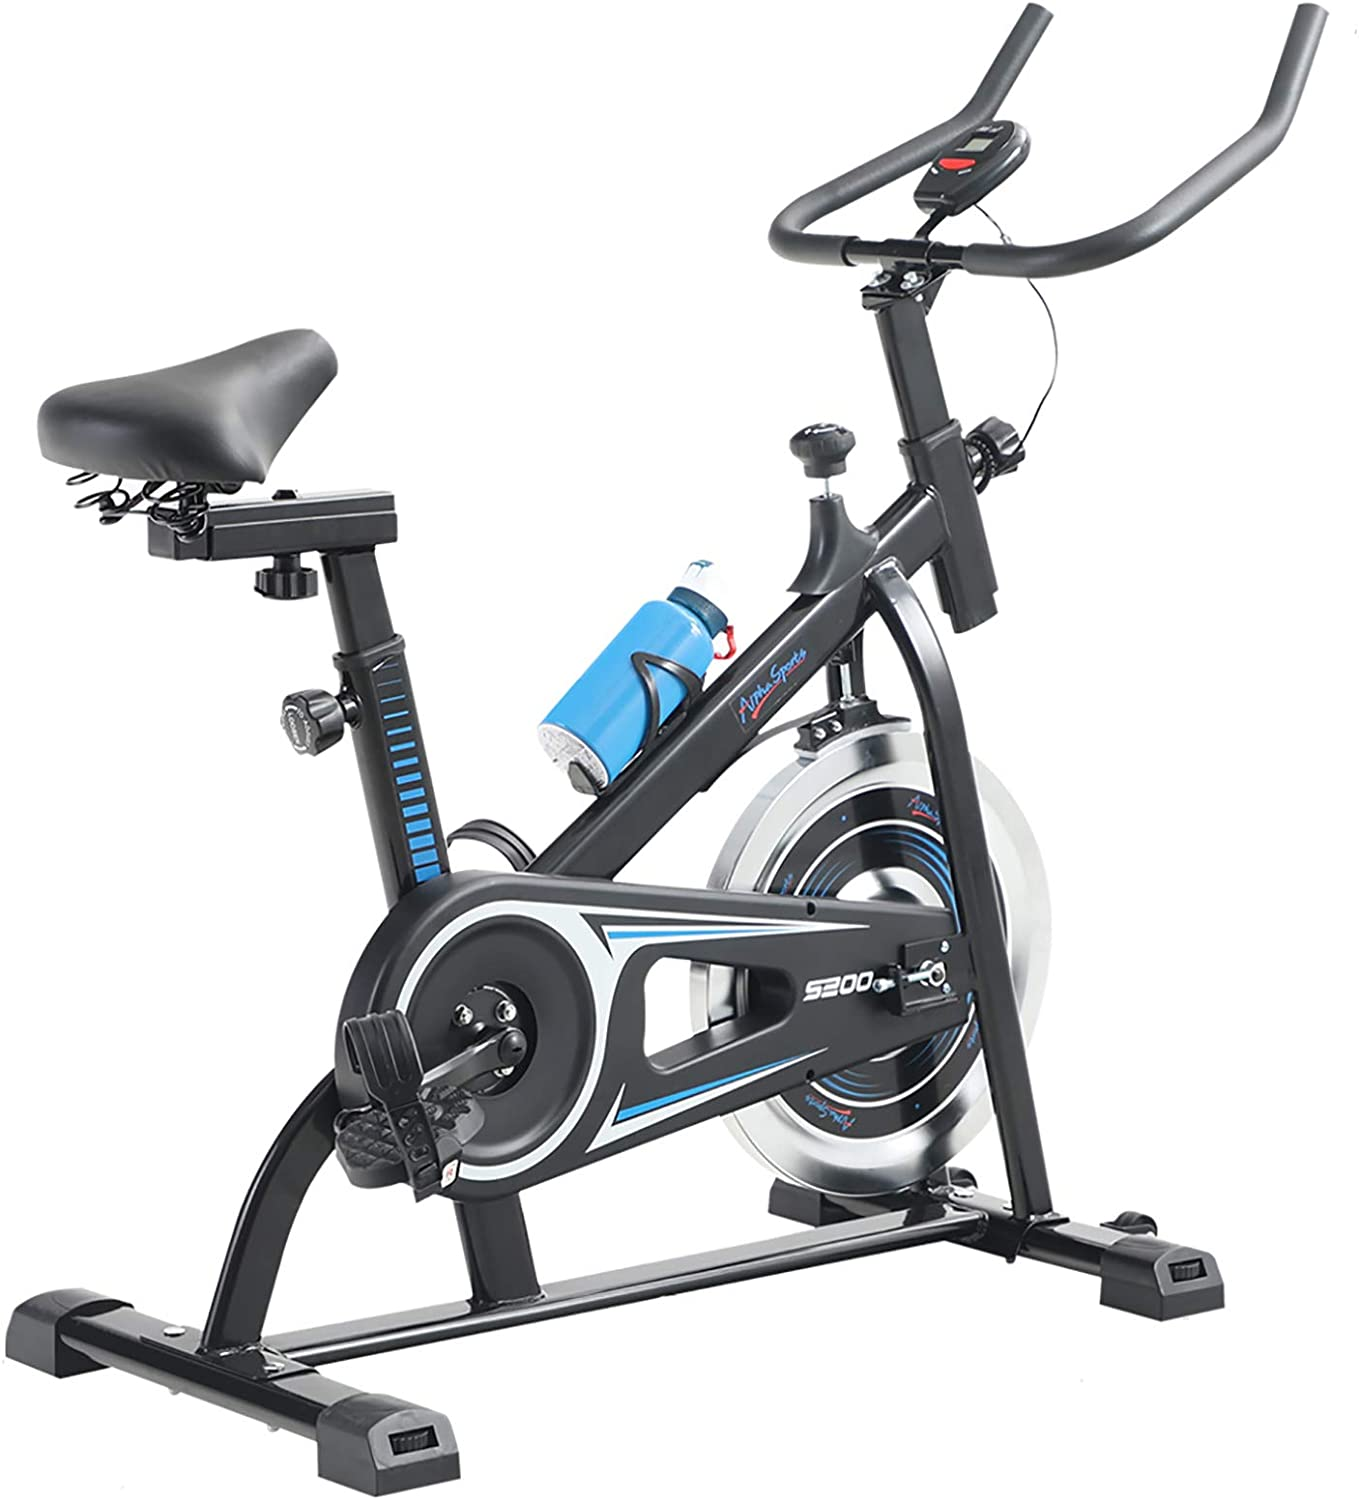 71abwiin0tL. AC SL1500 The Best Spin Exercise Bikes under $300 in 2021 Reviews